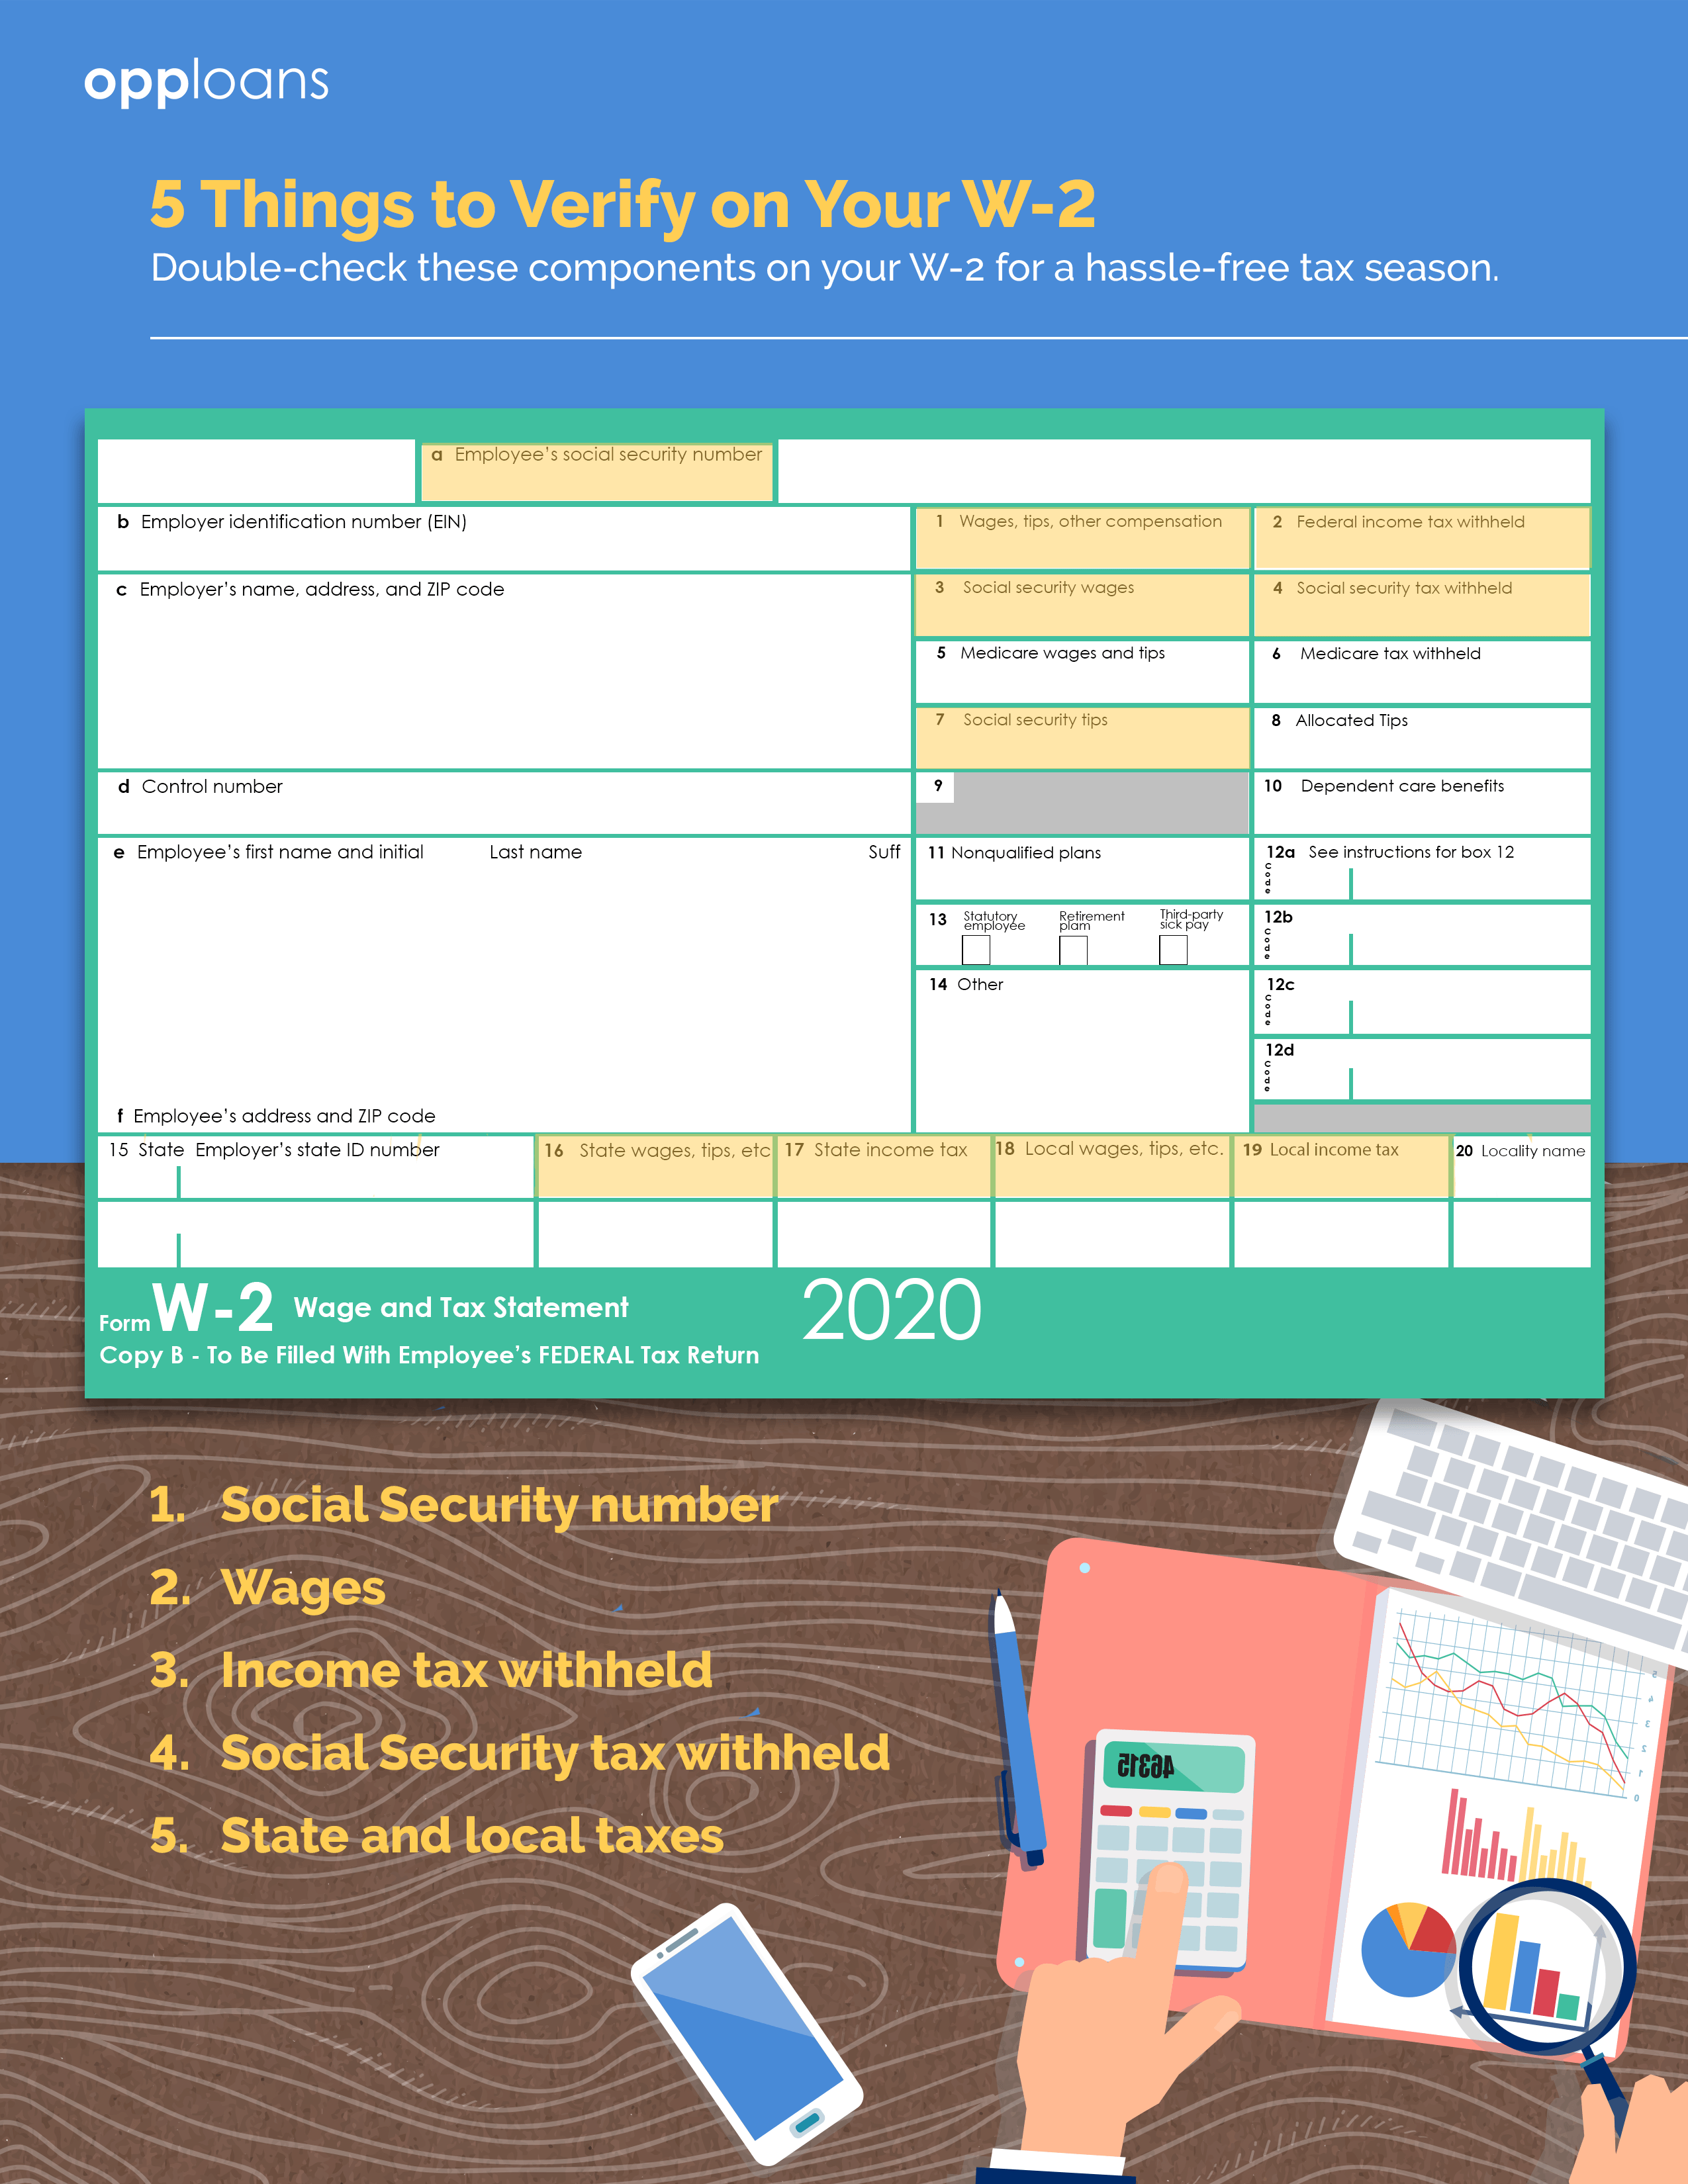 W-2 infographic witha list of 5 items to vet